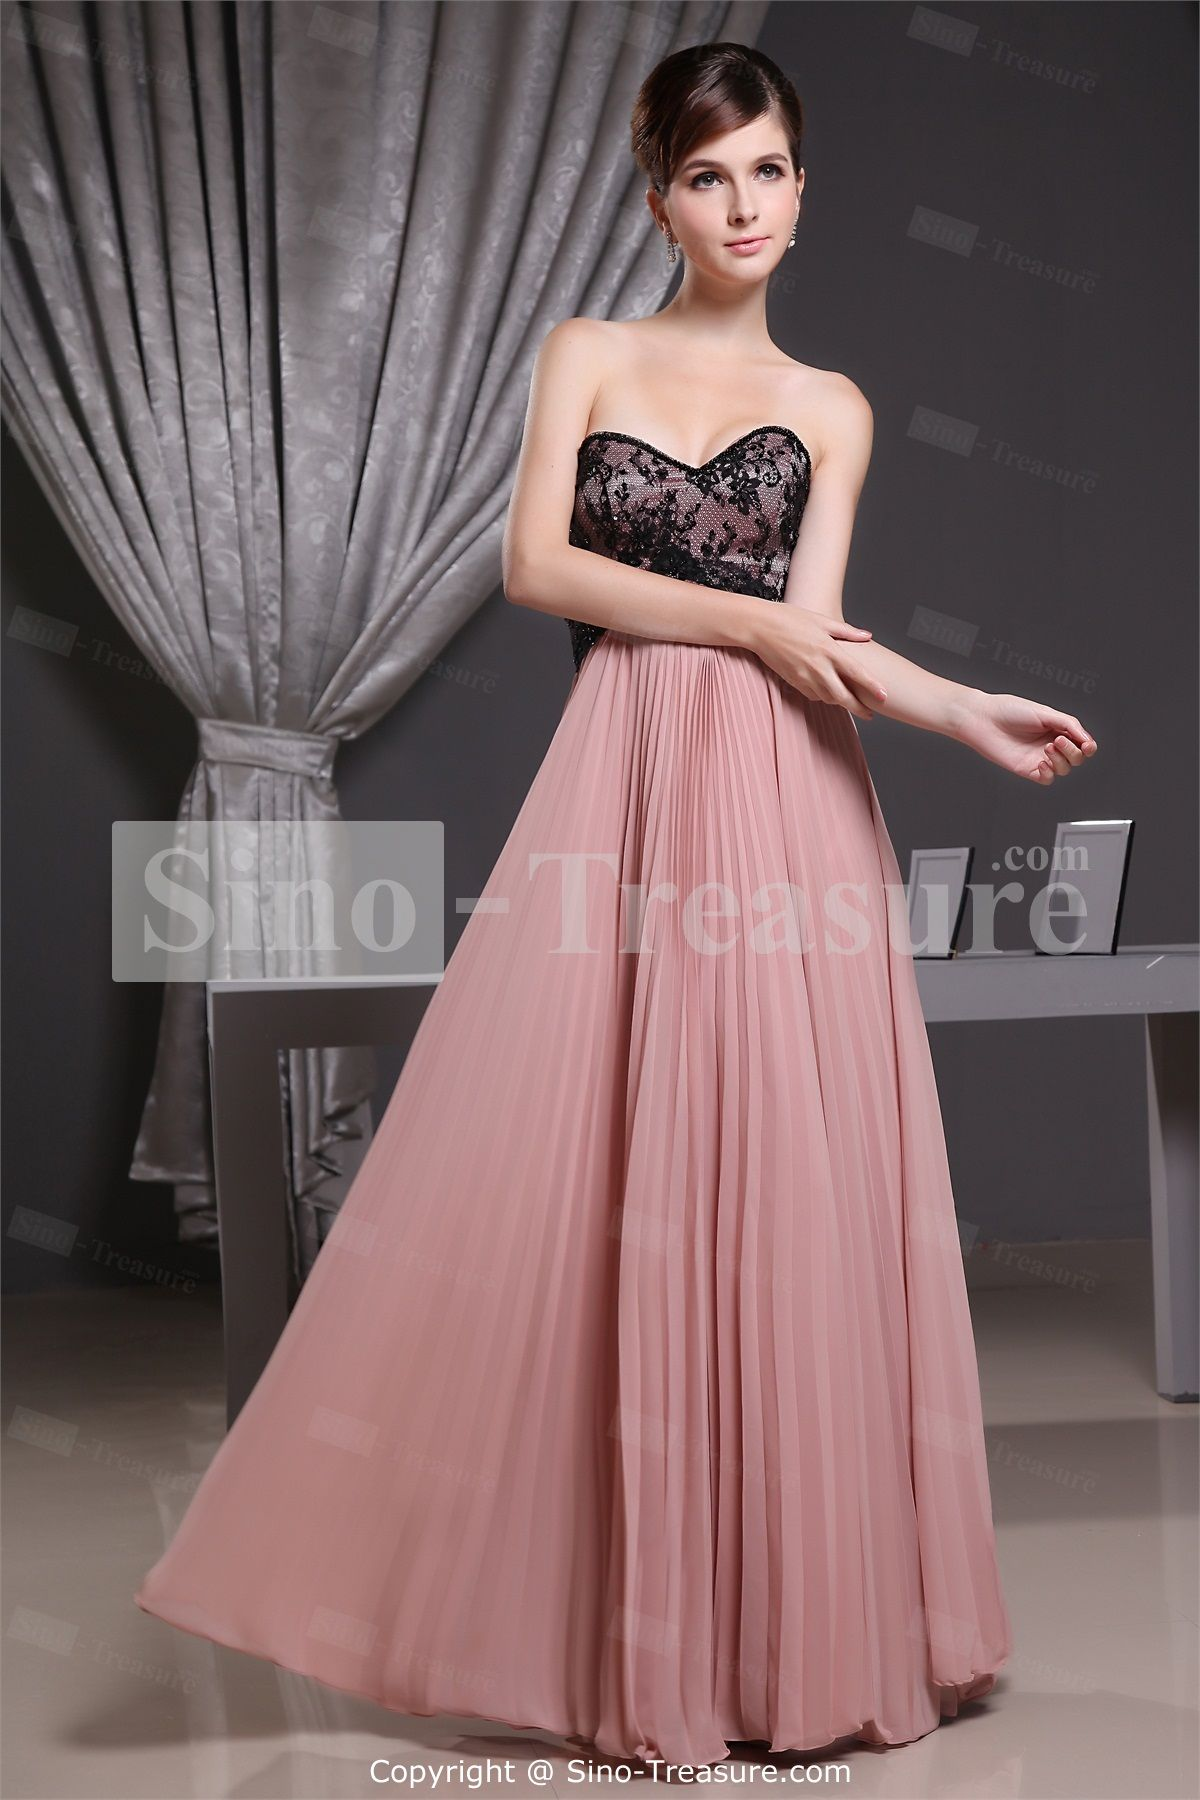 Long hot pink bridesu maid dresses with lace lace floorlength